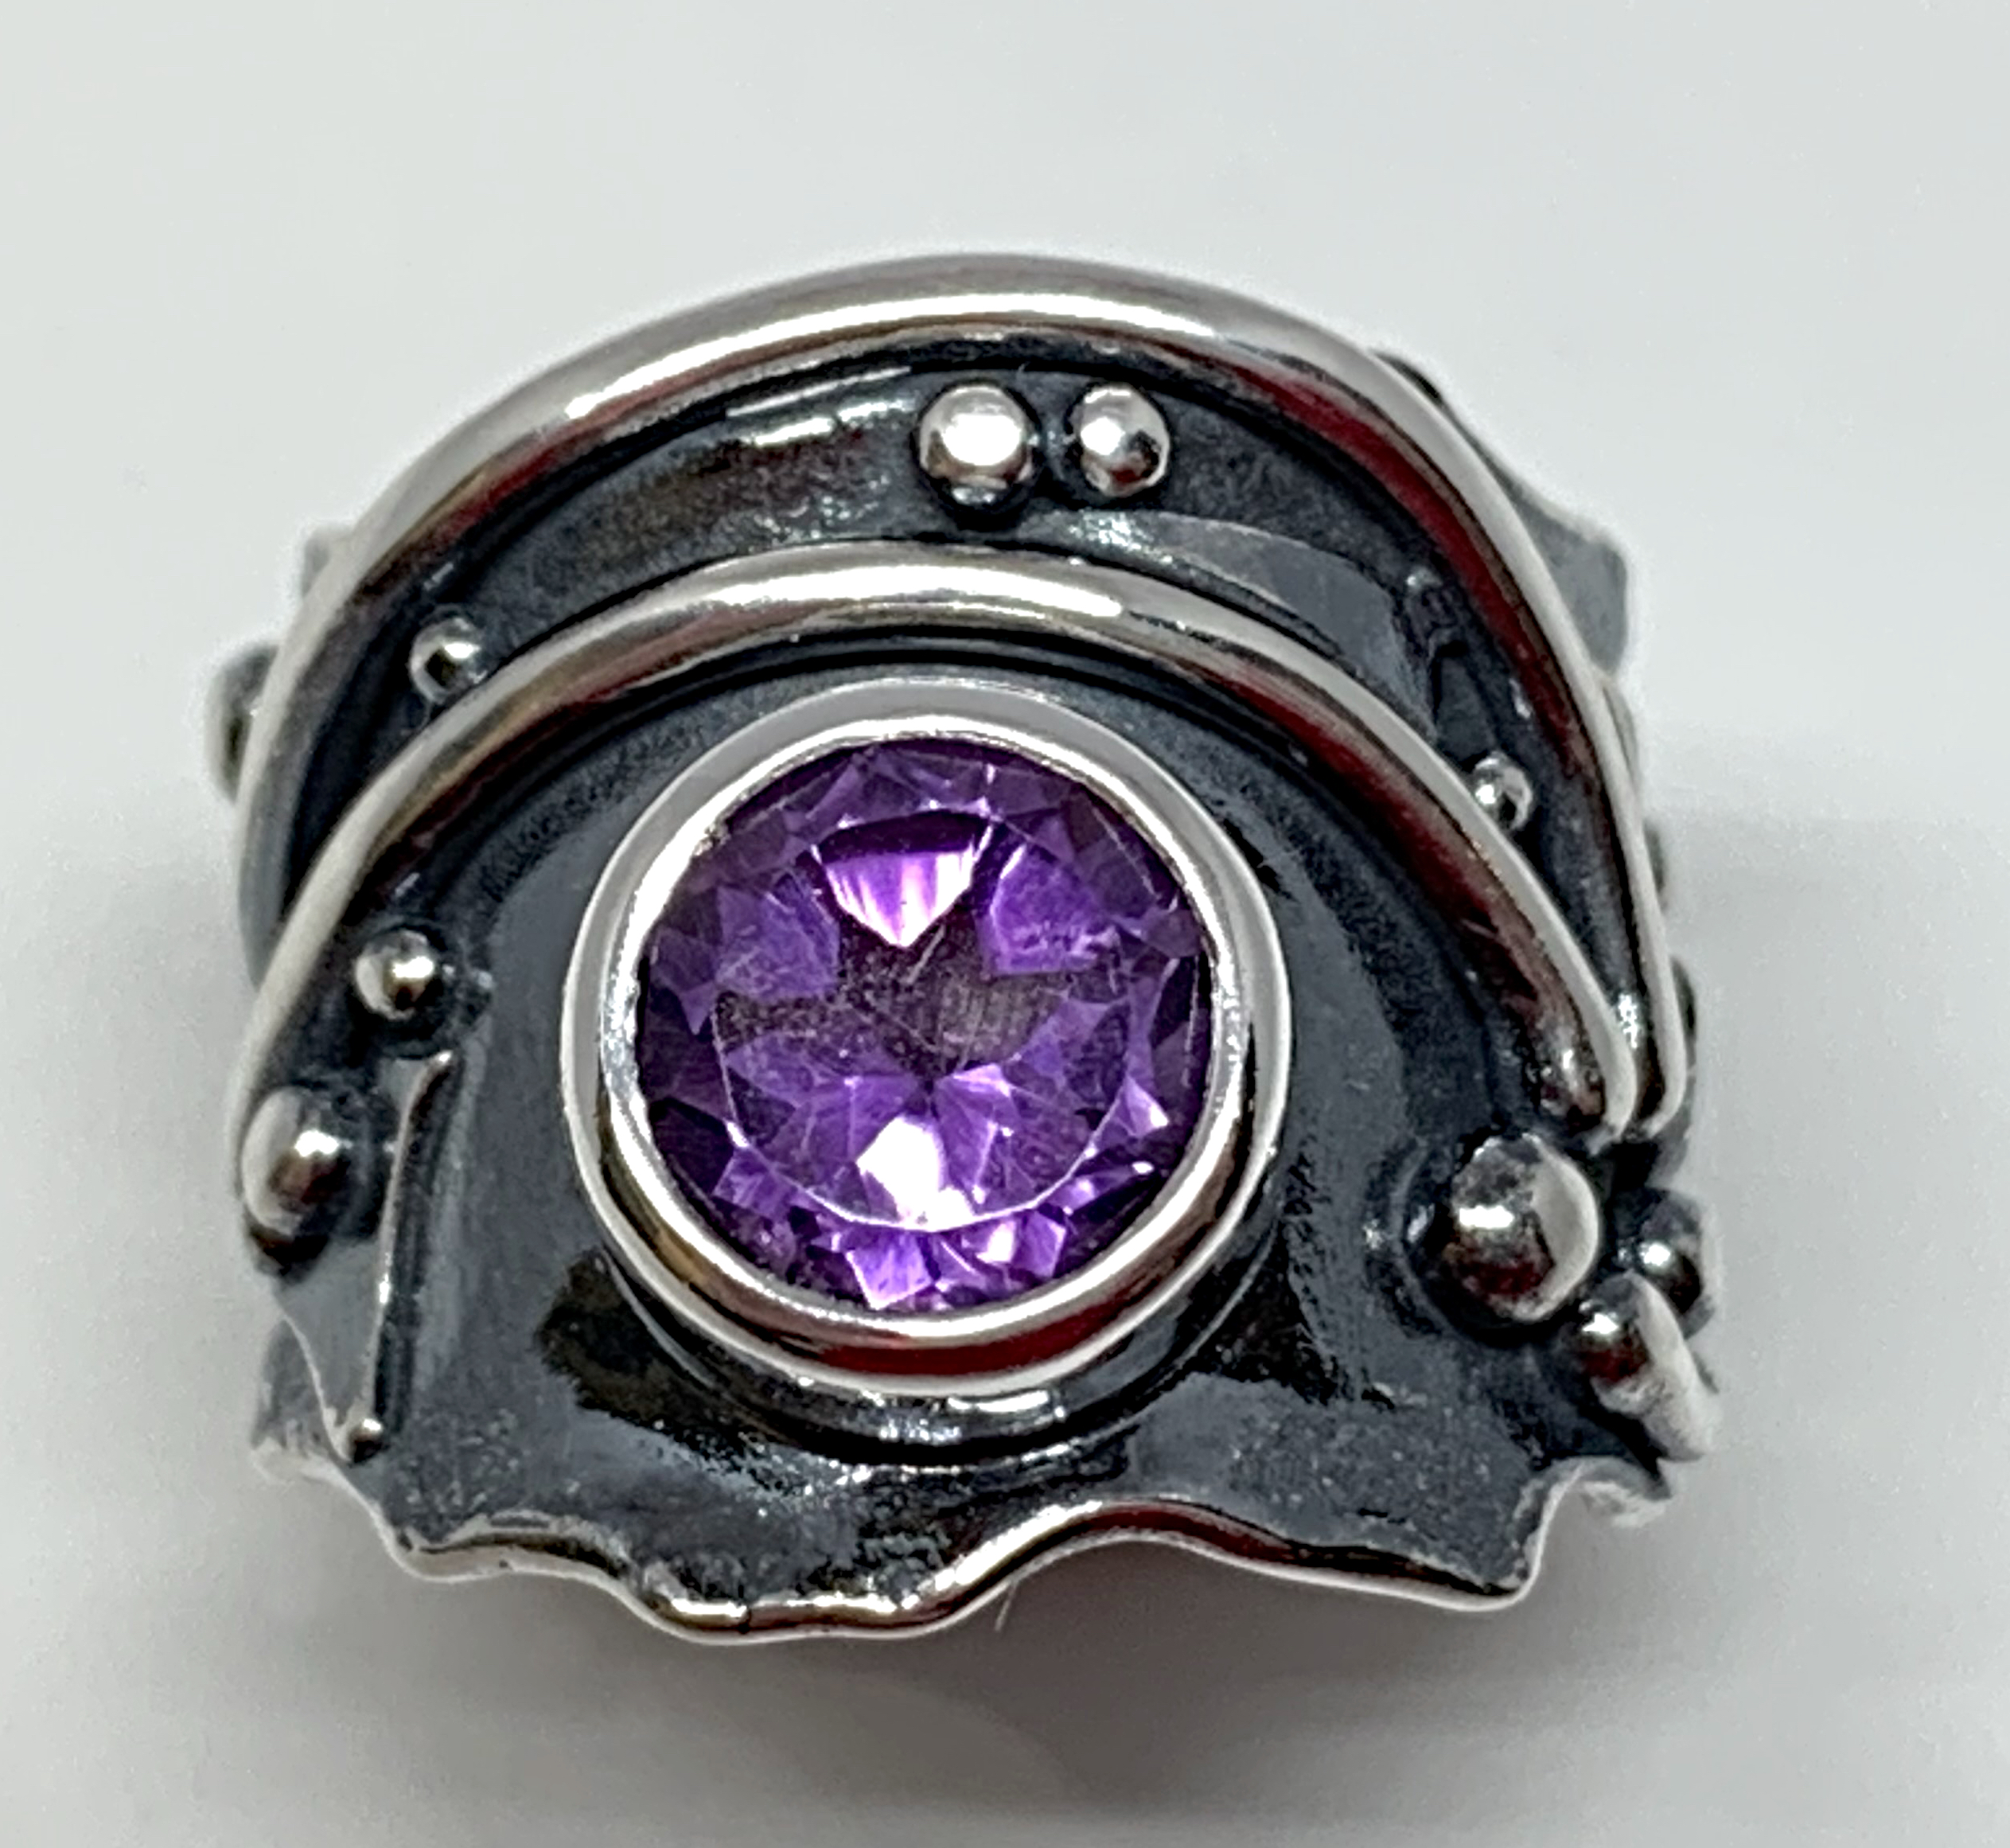 2ct amethyst + sterling silver ring by A&R Jewellery   Effusion Art Gallery + Cast Glass Studio, Invermere BC